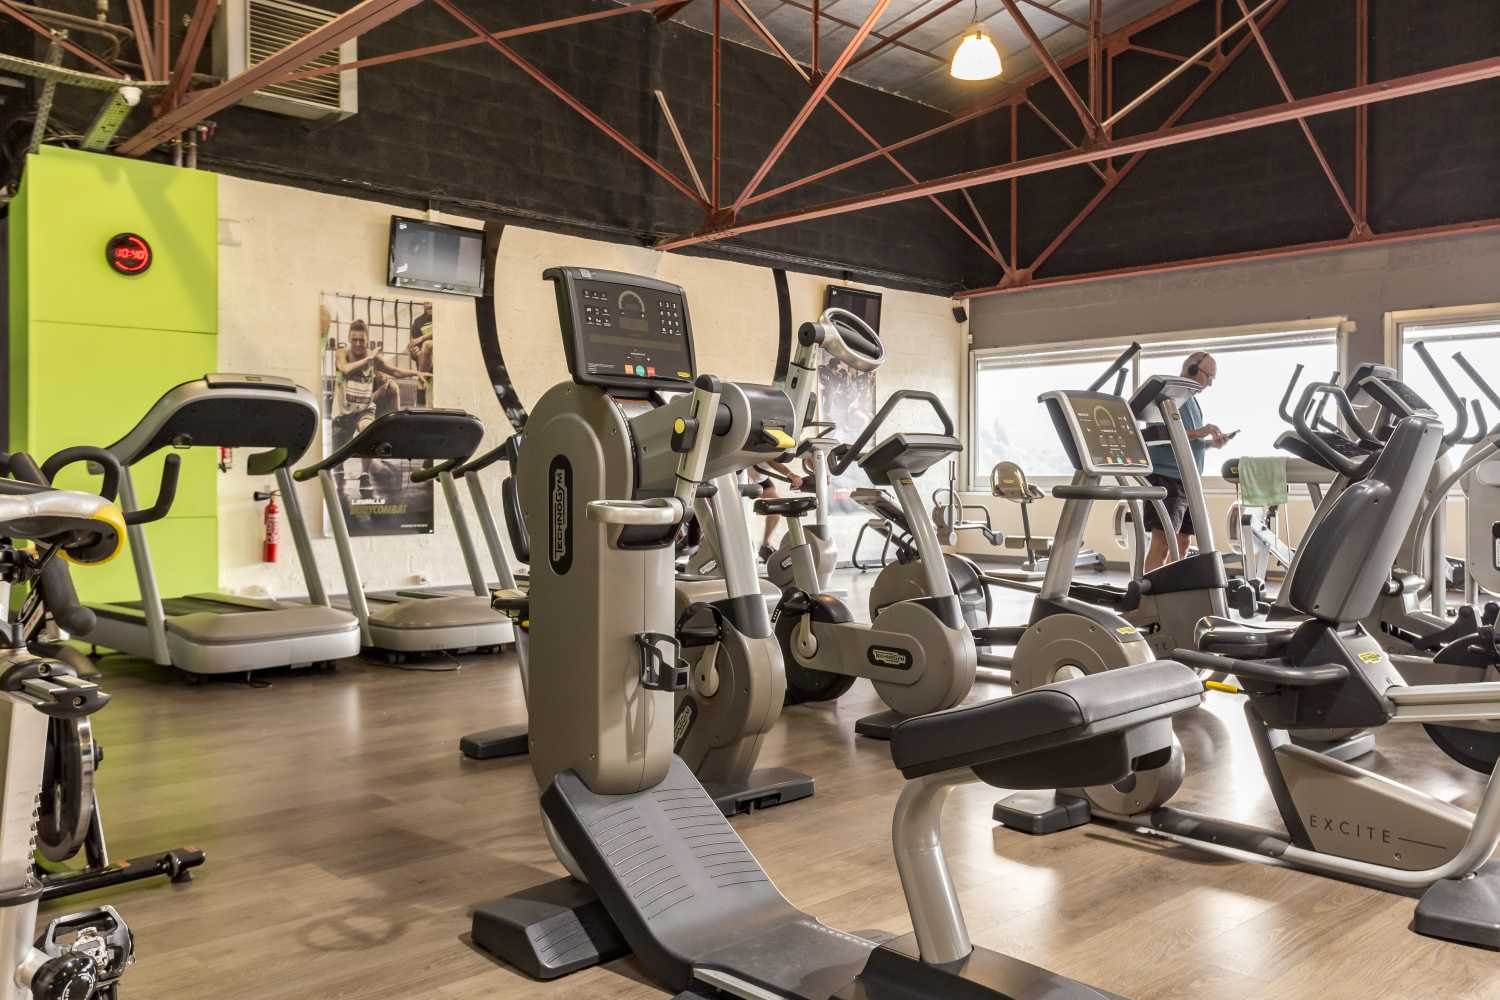 Salle De Fitness Musculation Cours Collectifs Coaching Voiron